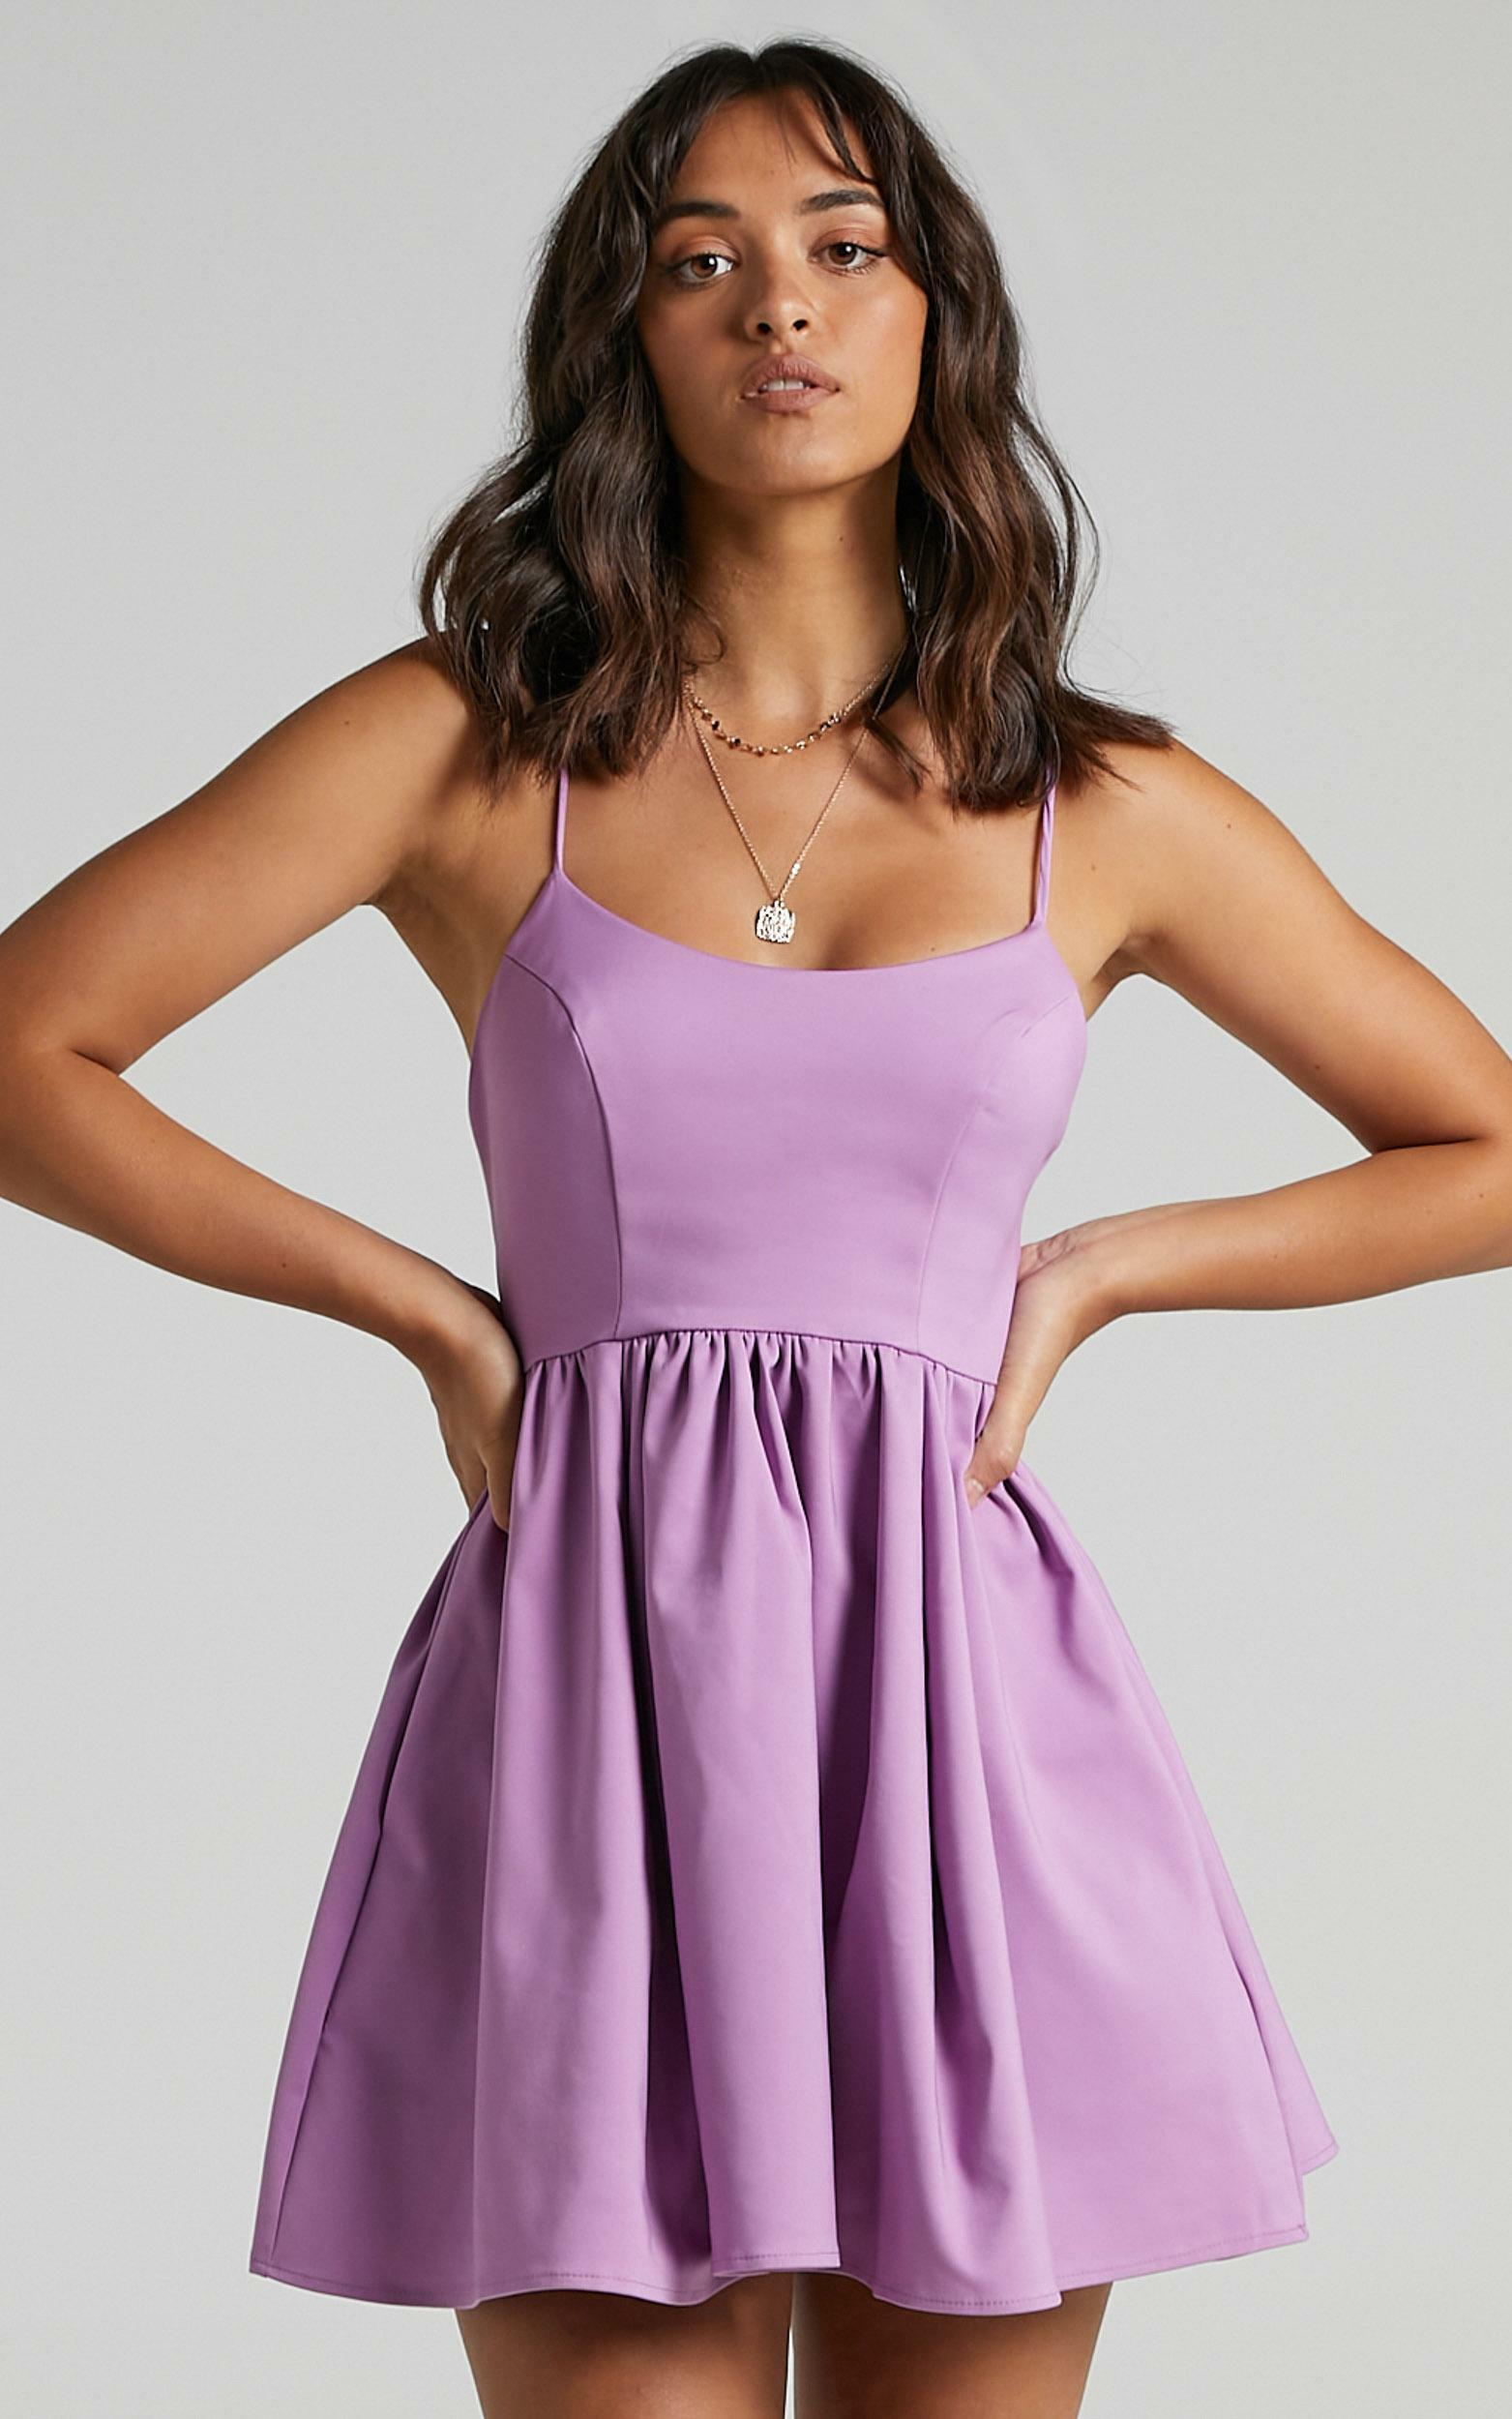 You Got Nothing To Prove A-line Mini Dress in Lilac - 06, PRP5, hi-res image number null